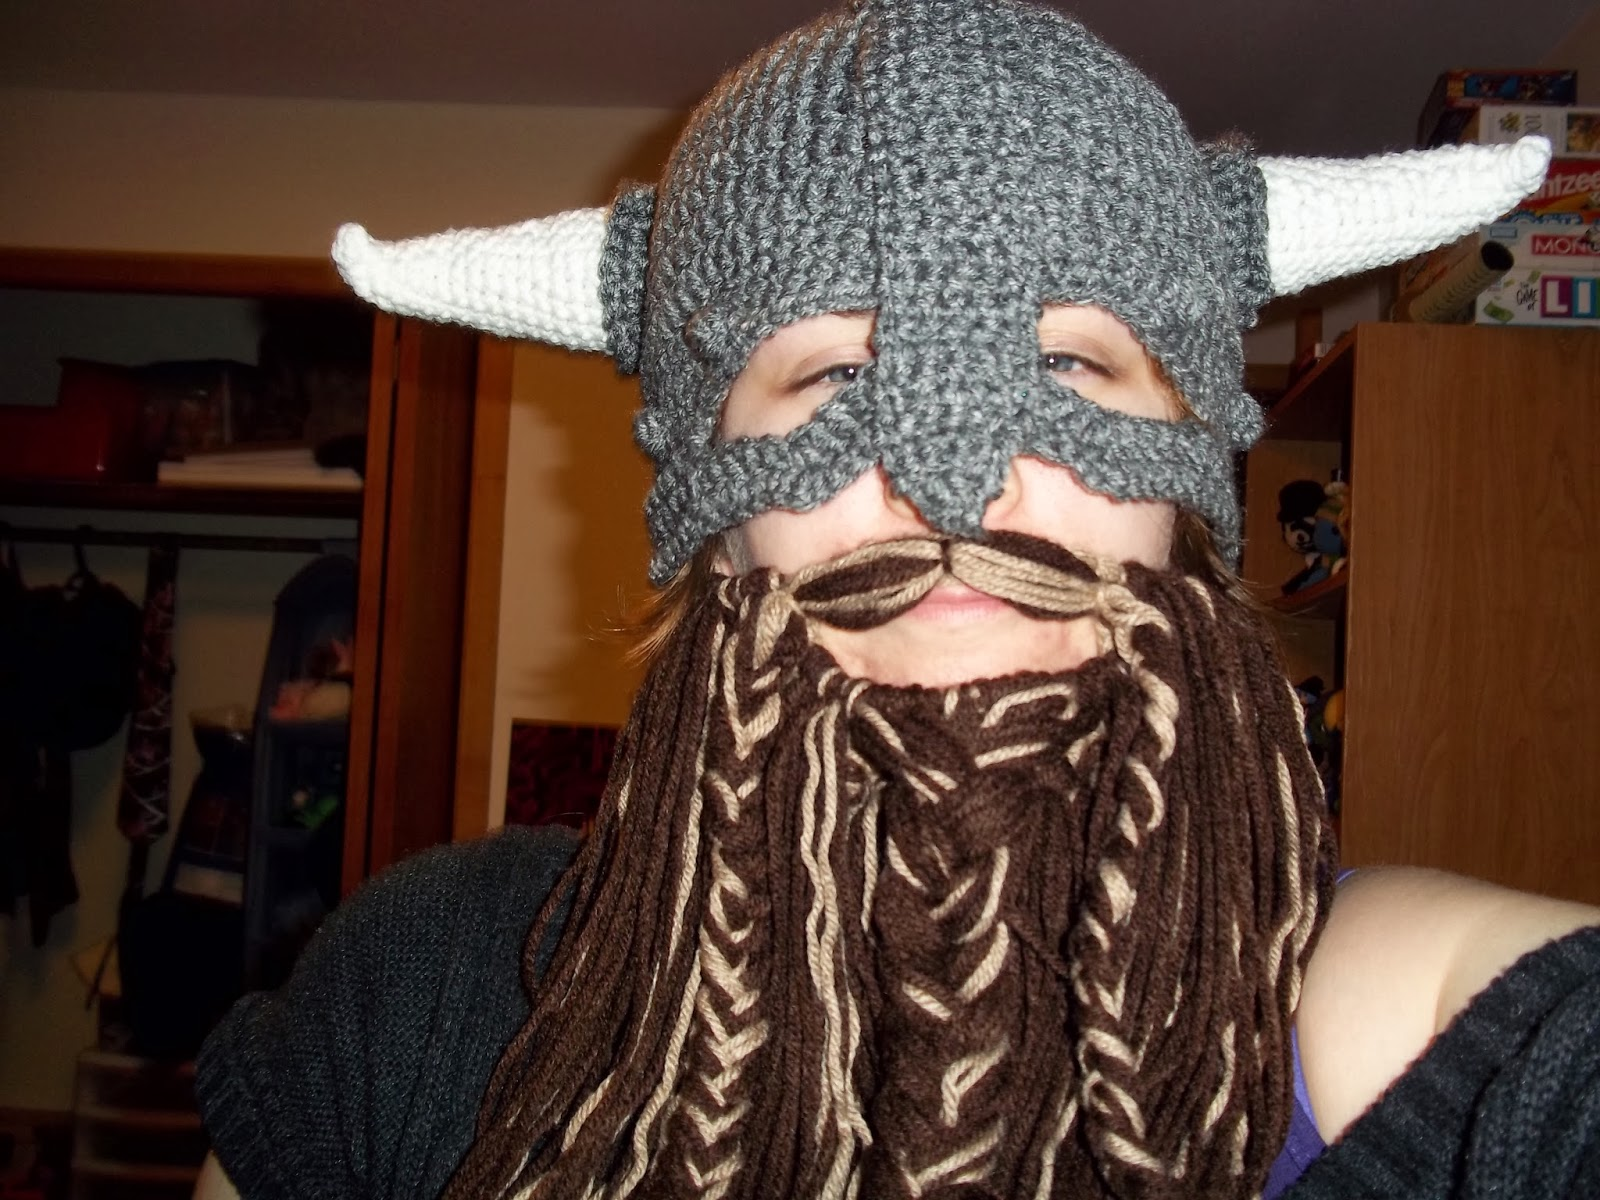 Crochet Viking Hat And Beard Pattern : Eden is only a dream away: Viking hat with beard